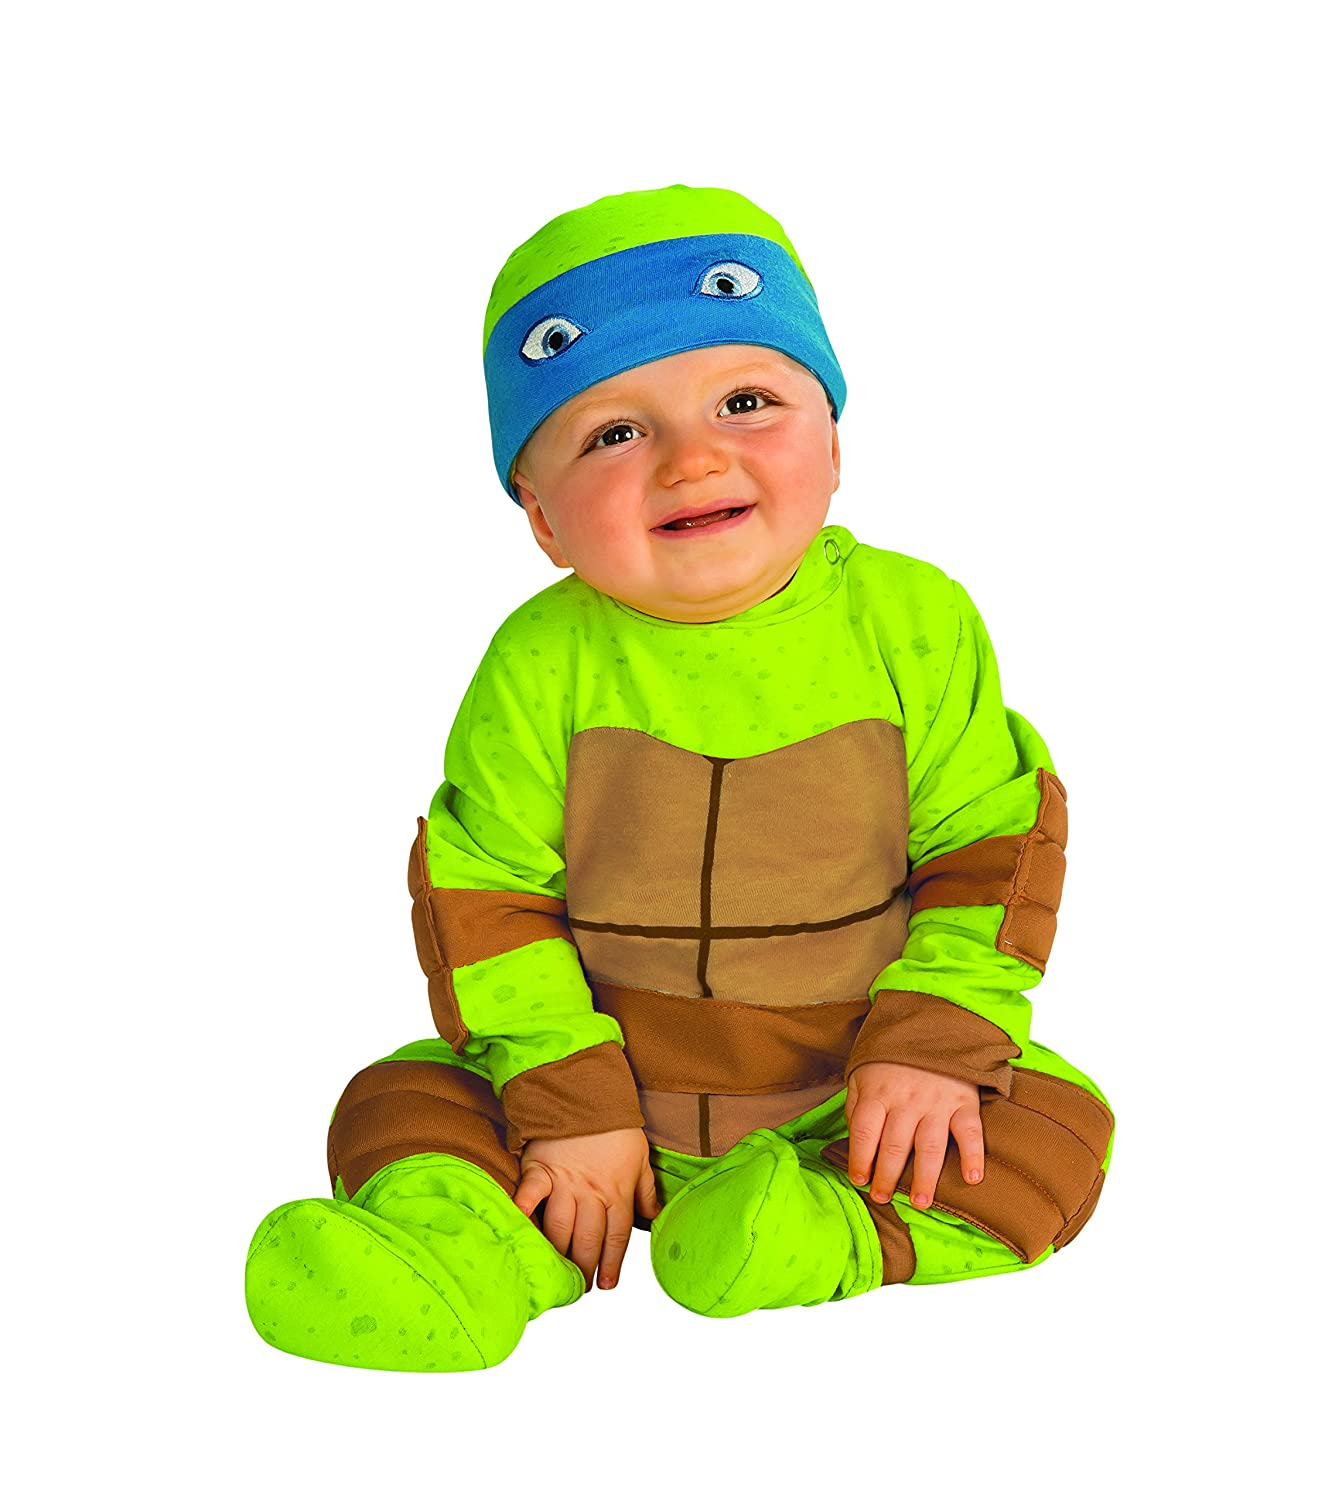 Rubie's Costume Baby's Teenage Mutant Ninja Turtles Animated Series Baby Costume Rubies Costumes - Apparel